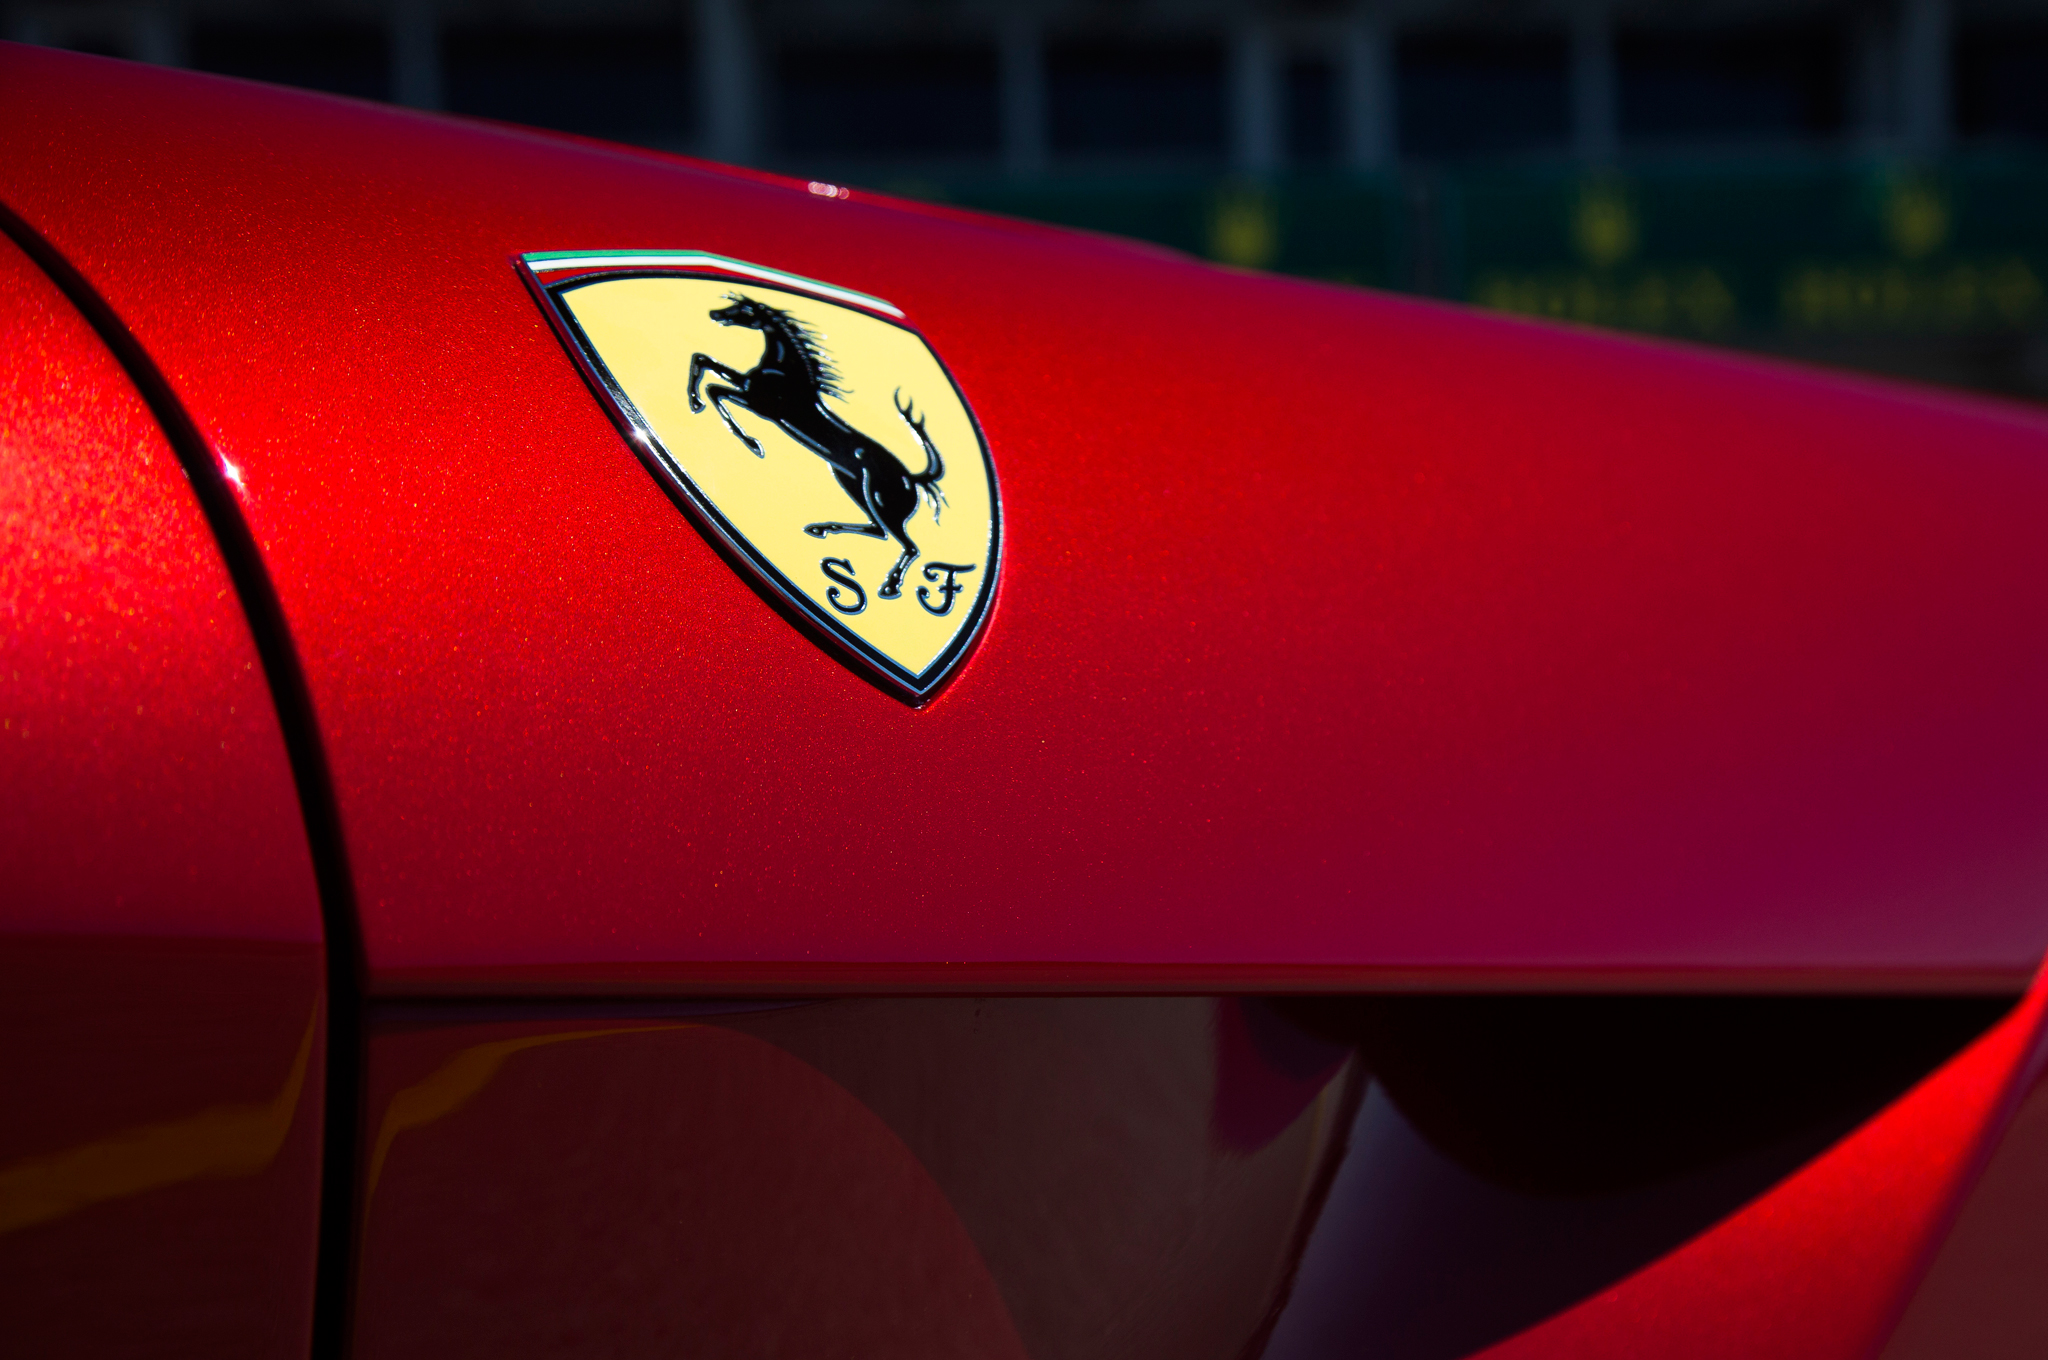 Ferrari's New Era: It's Marchionne's Turn Now, and He Wants Growth